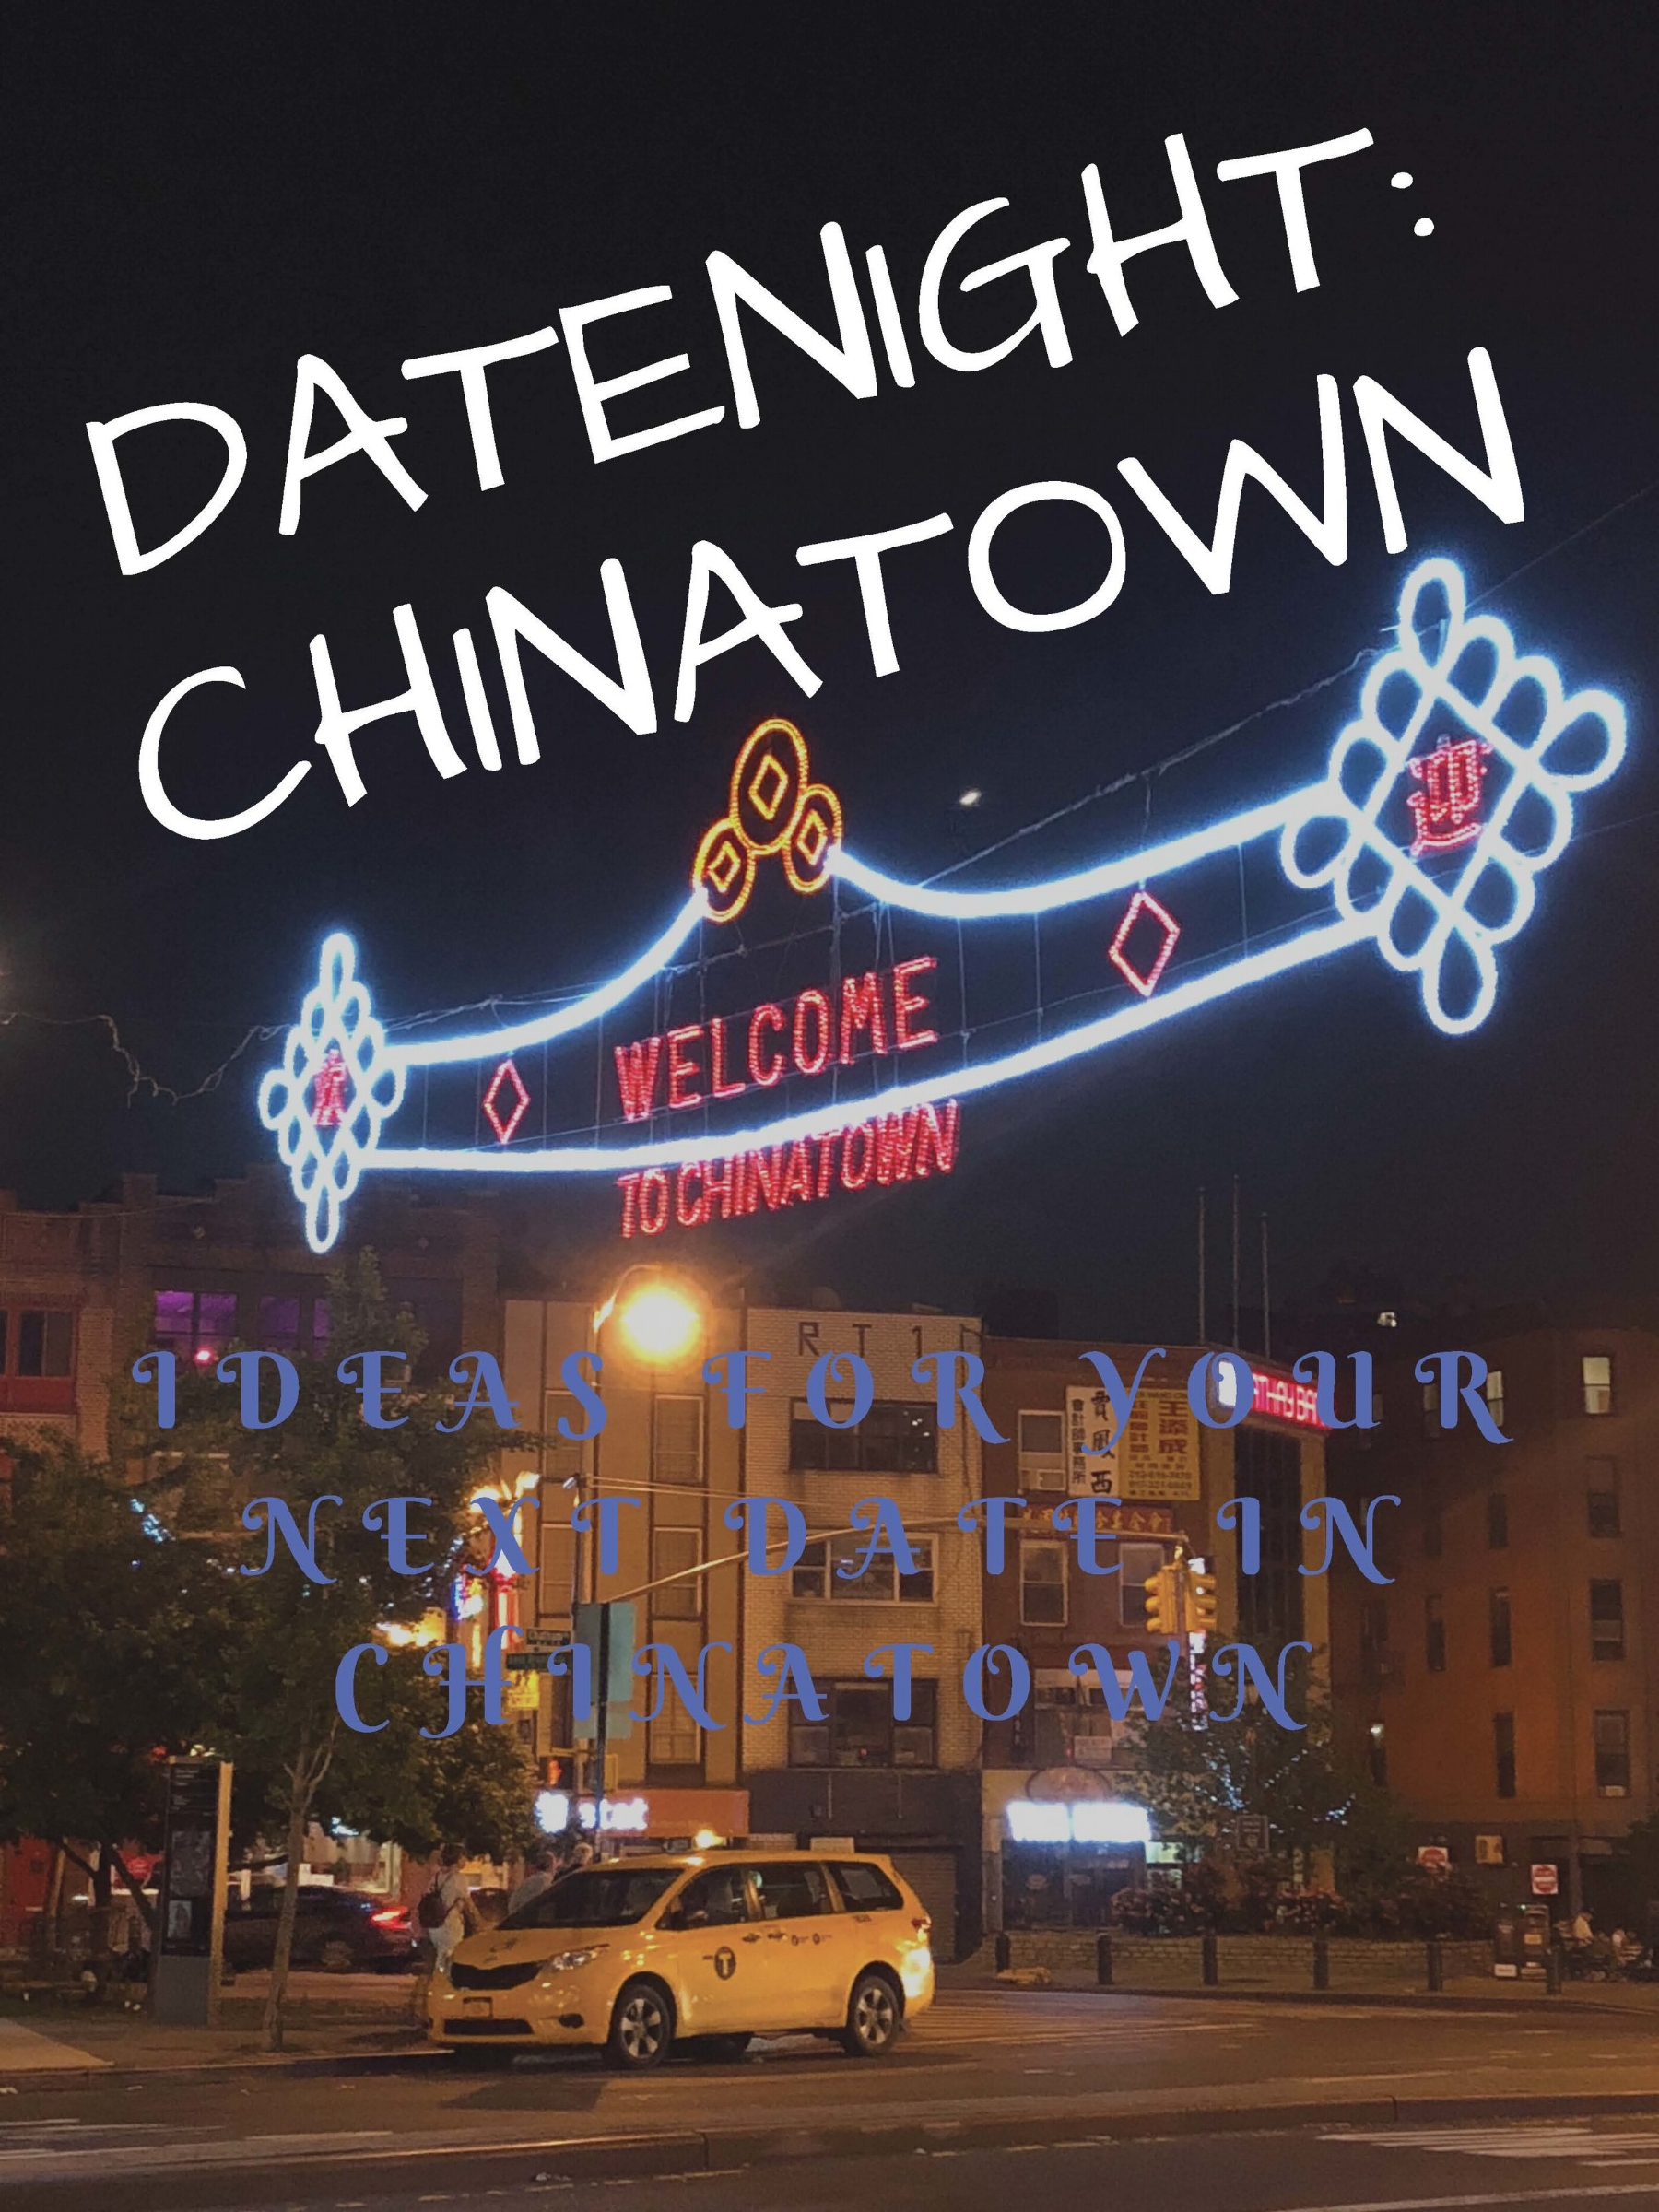 You can't miss Chinatown with it's bright lights and welcoming signs that invites everyone to experiences its excitement.  Chinatown, NYC 2018.